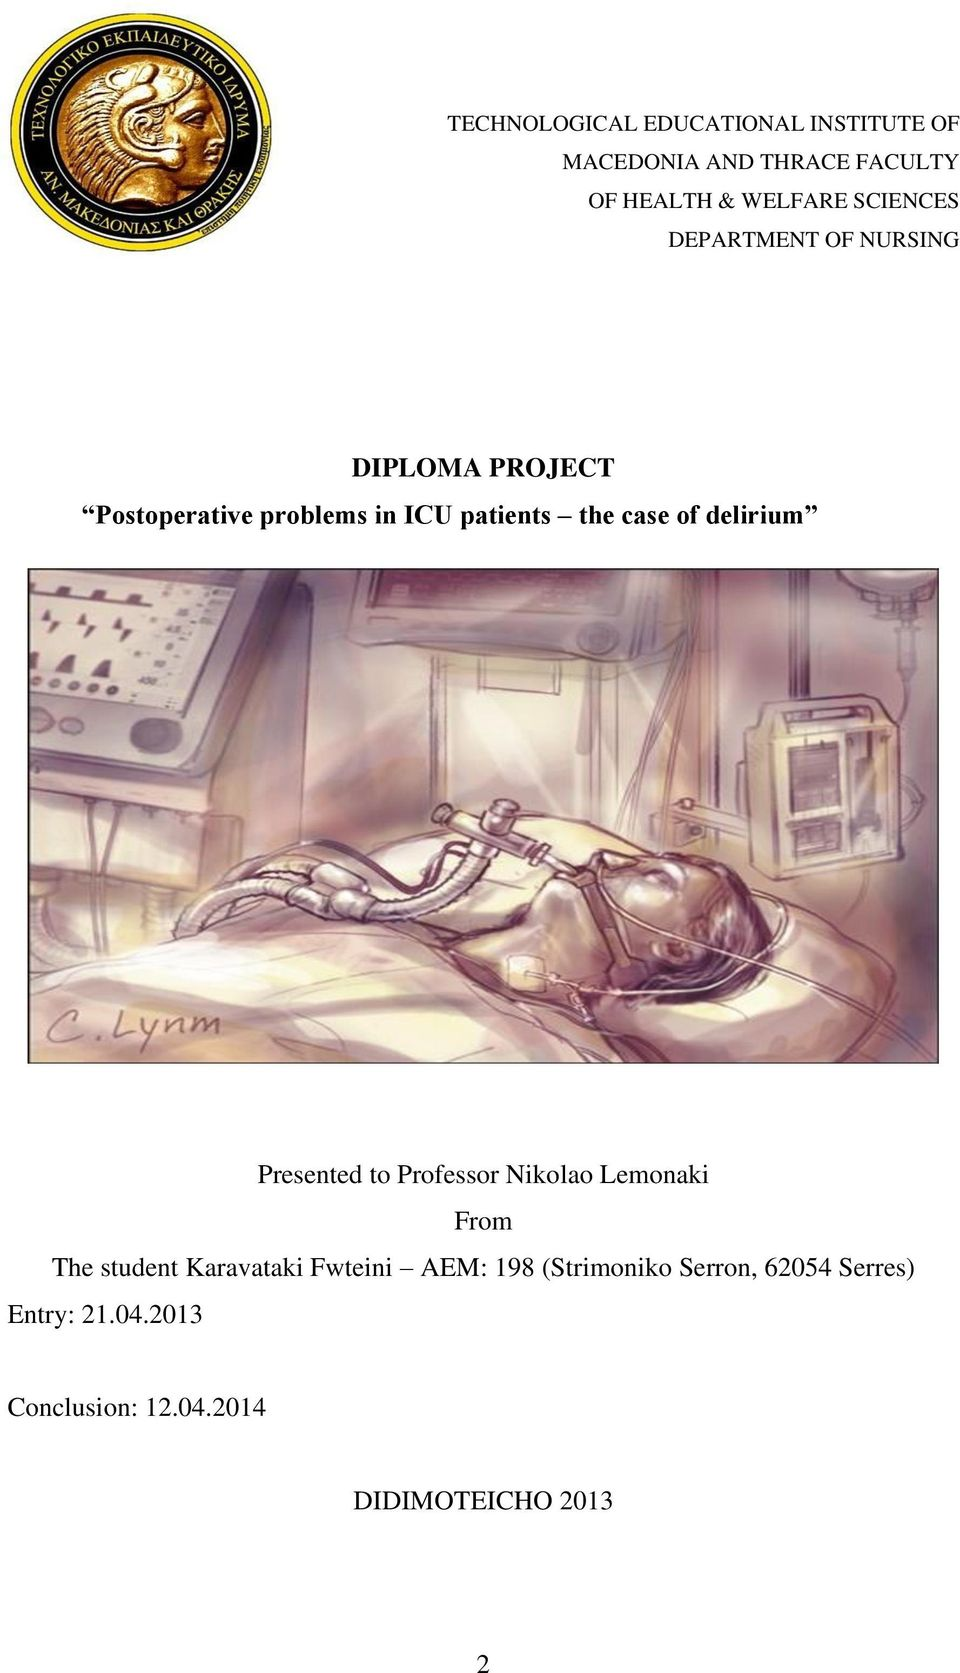 case of delirium Presented to Professor Nikolao Lemonaki From The student Karavataki Fwteini